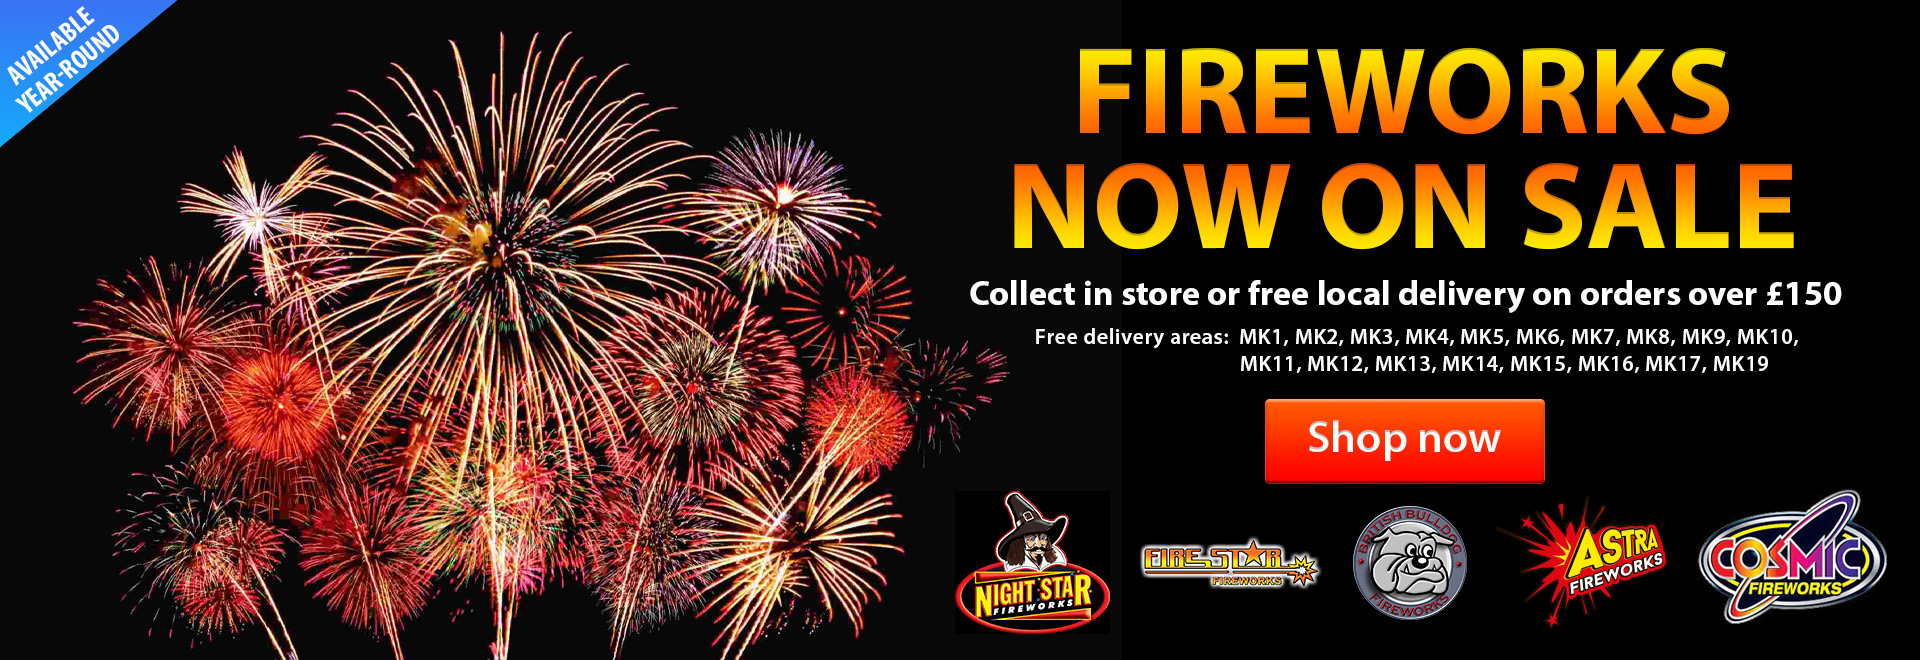 View our Fireworks for sale